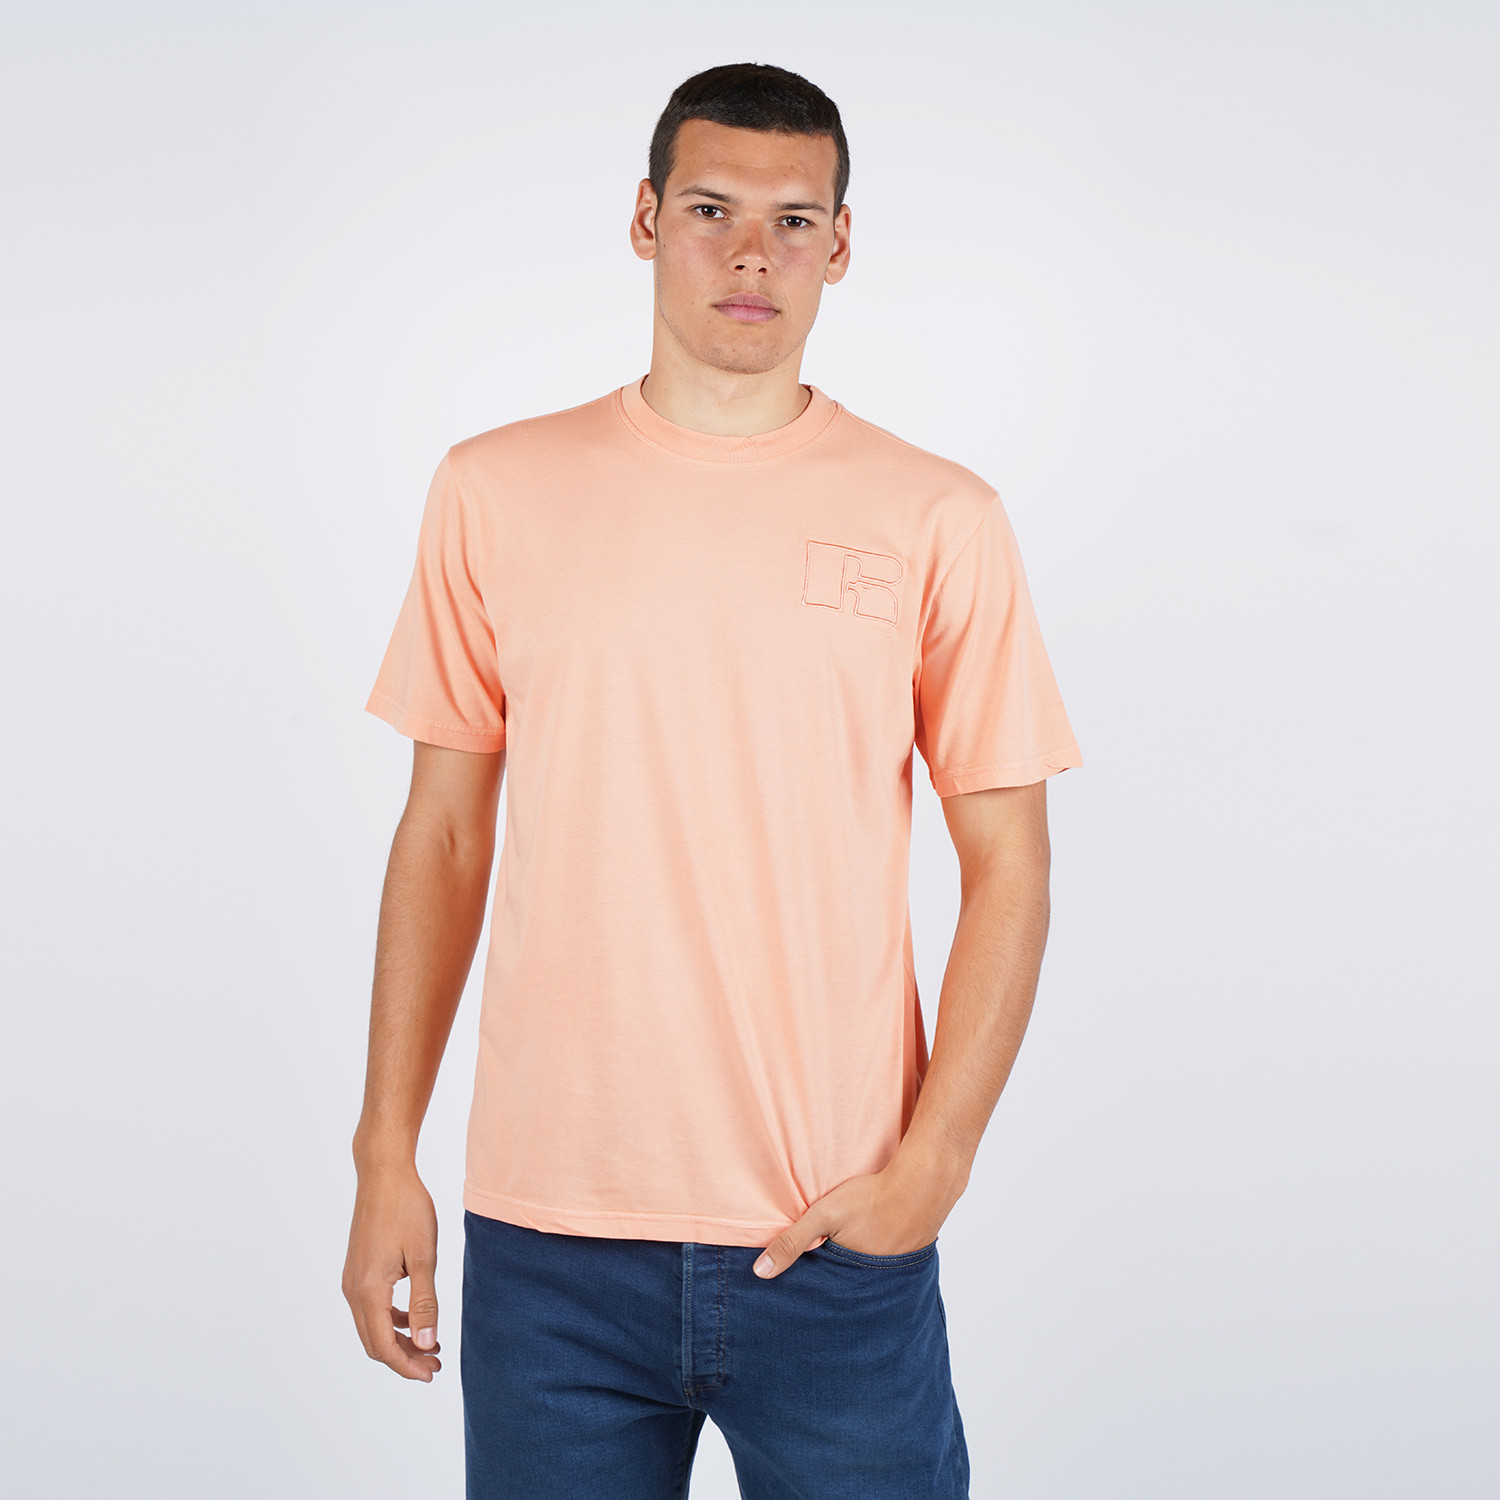 Russell Athletic Russell Athletic Alessandro Men's Tee (9000051681_32496)